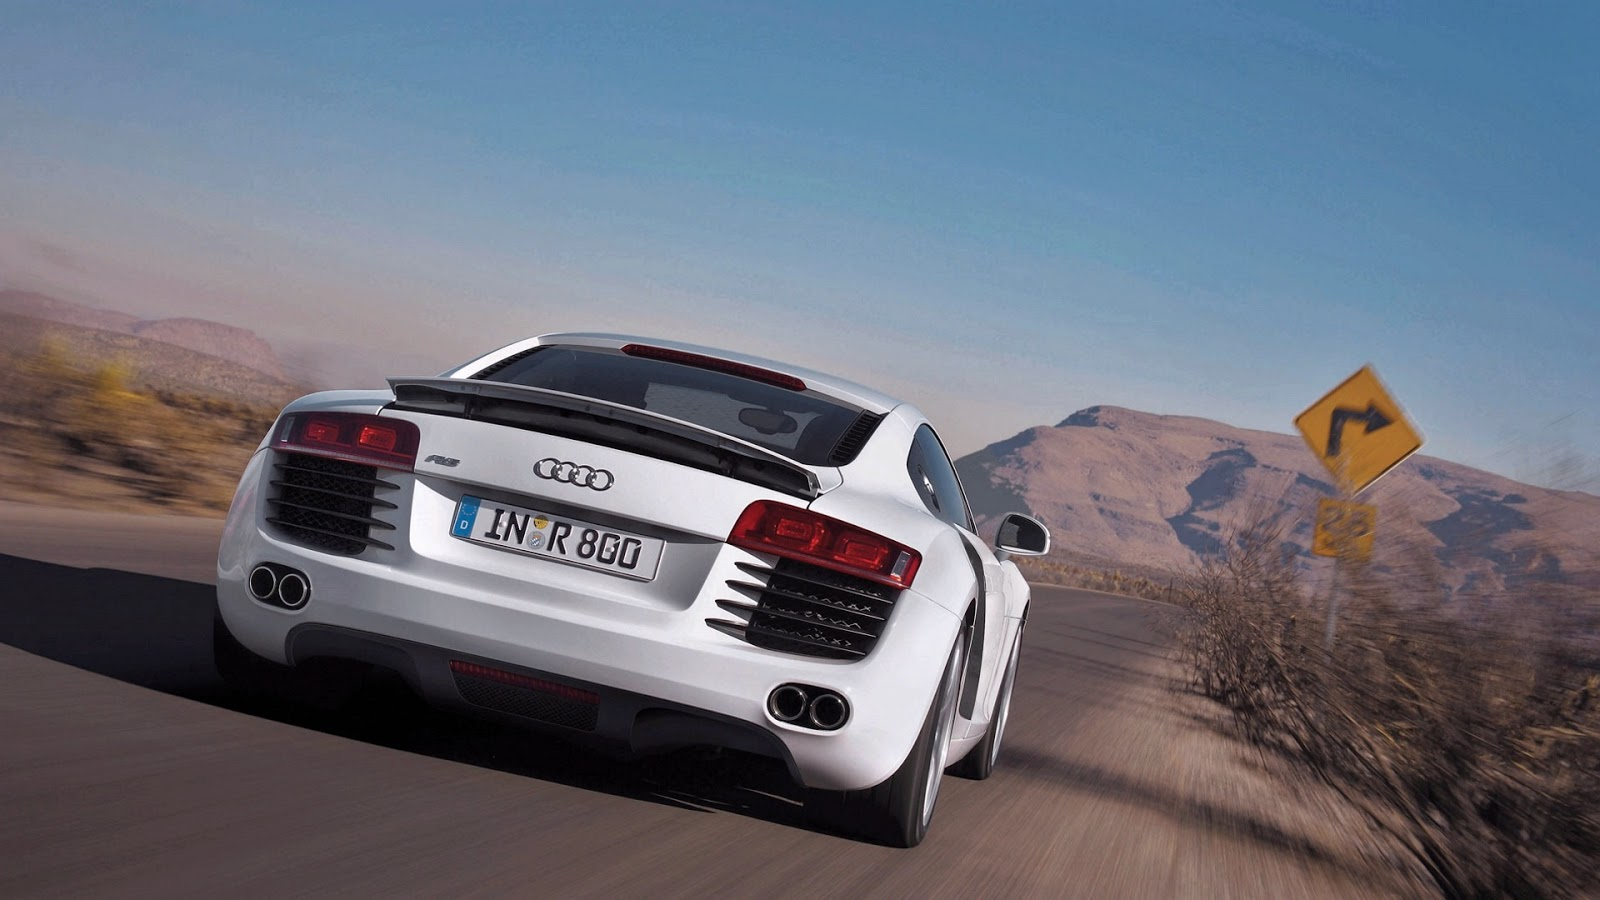 Audi R8 Red 1080p HD Wallpaper 1920x1080 Ultra Wallpapers 1600x900